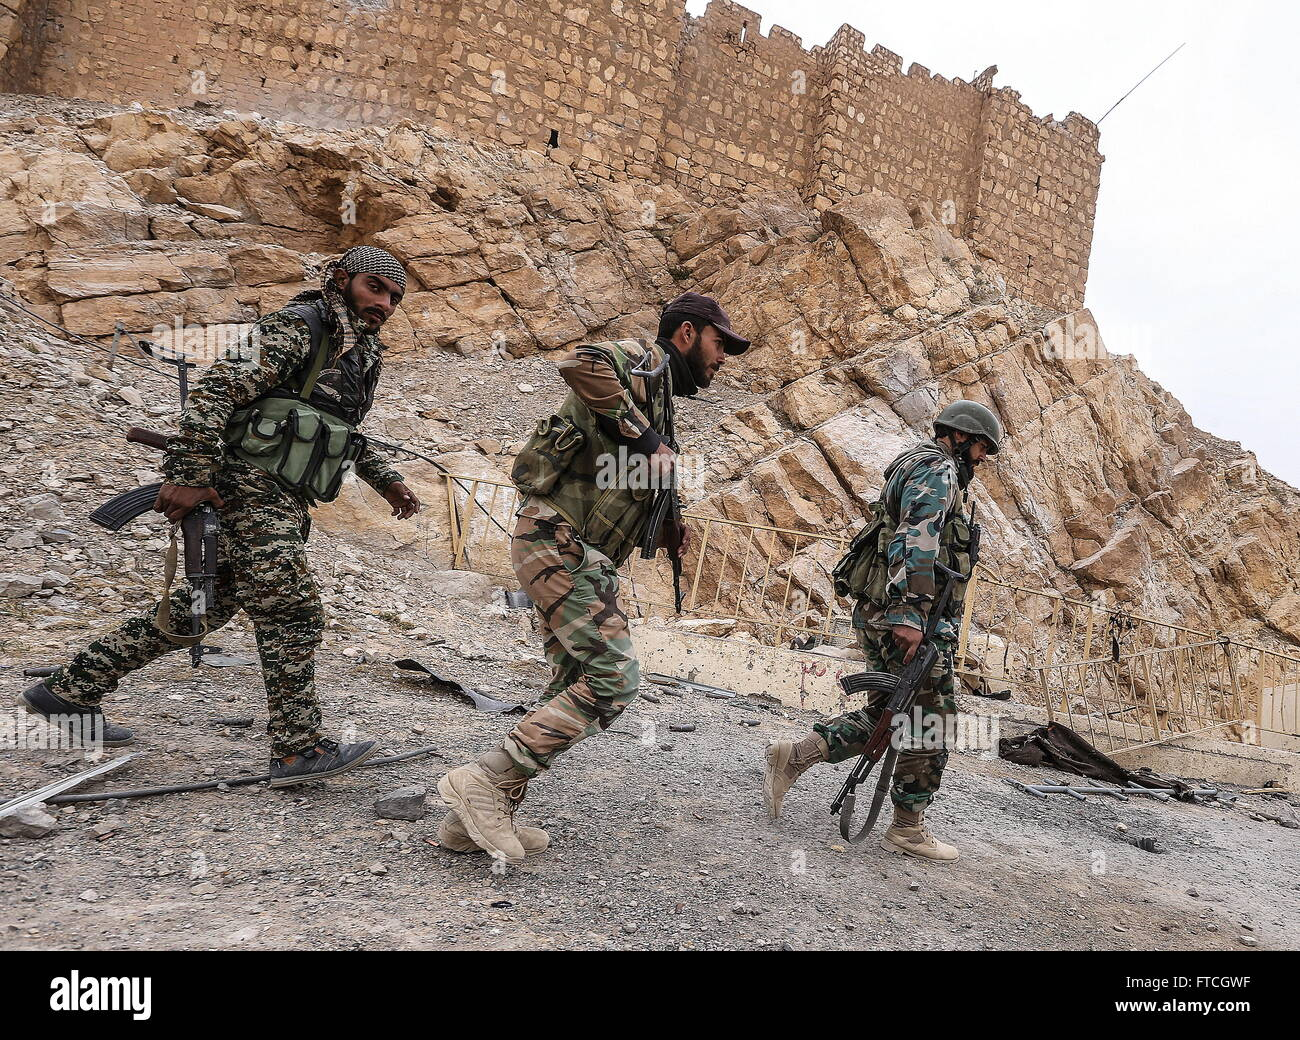 Palmyria, Syria. 26th Mar, 2016. Soldier of the Syrian government army near Fakhr al-Din al-Maani Citadel in Palmyra, - Stock Image